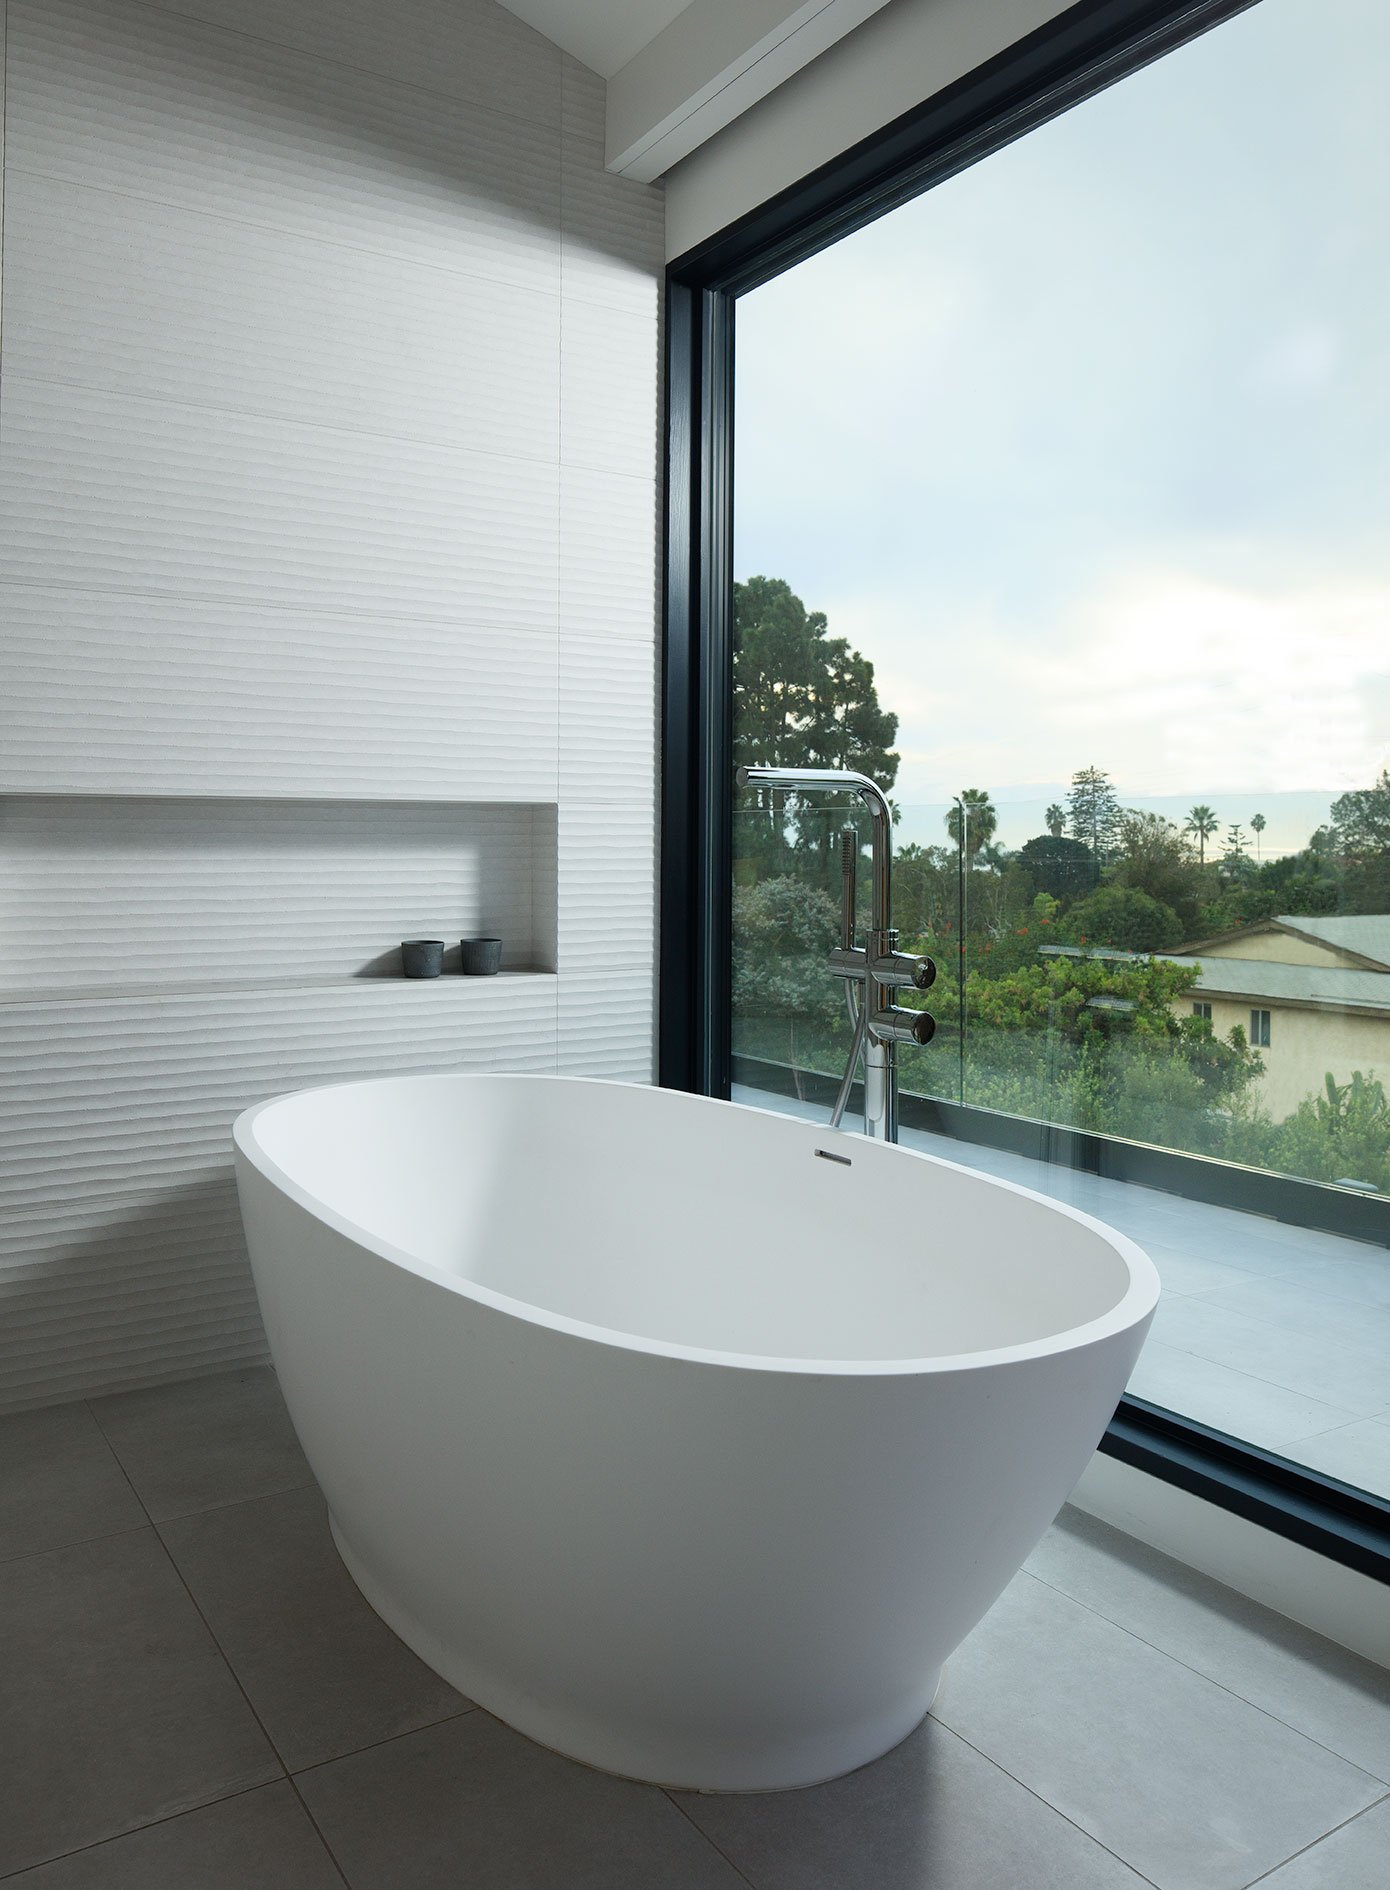 green home design sustainable LEED bathroom bathtub soaking tub